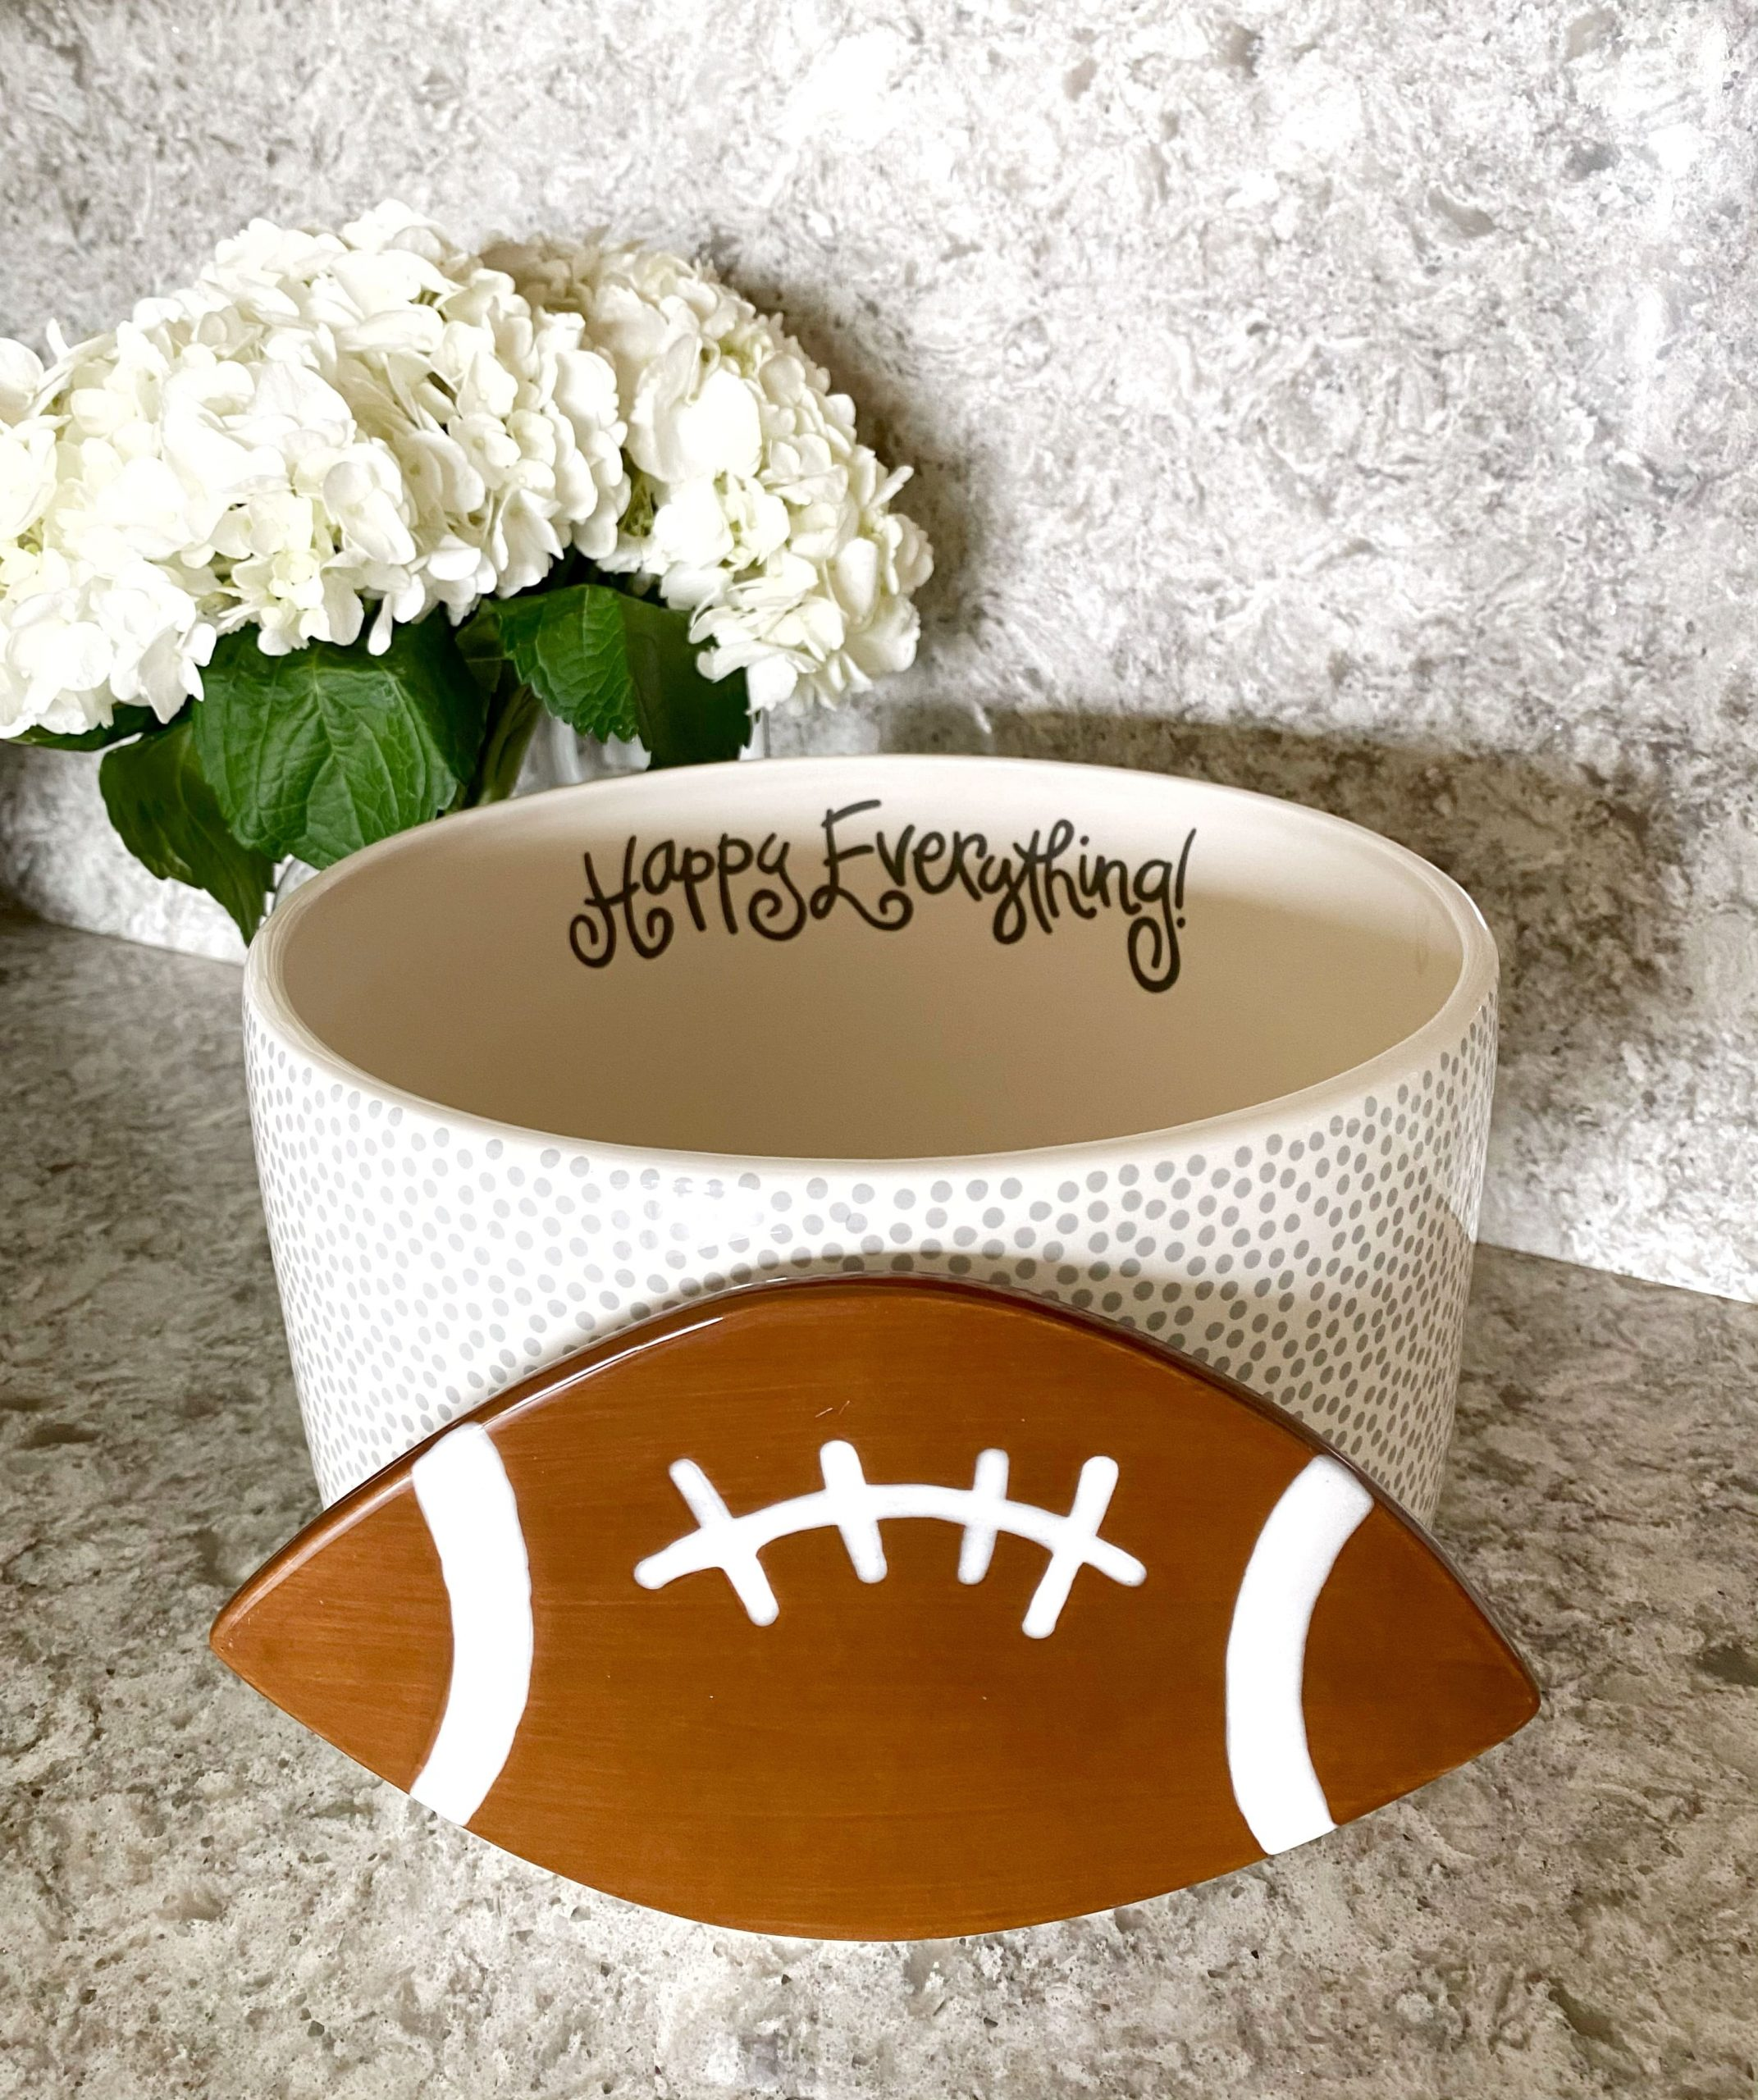 Happy Everything! Large Base Football Attachment